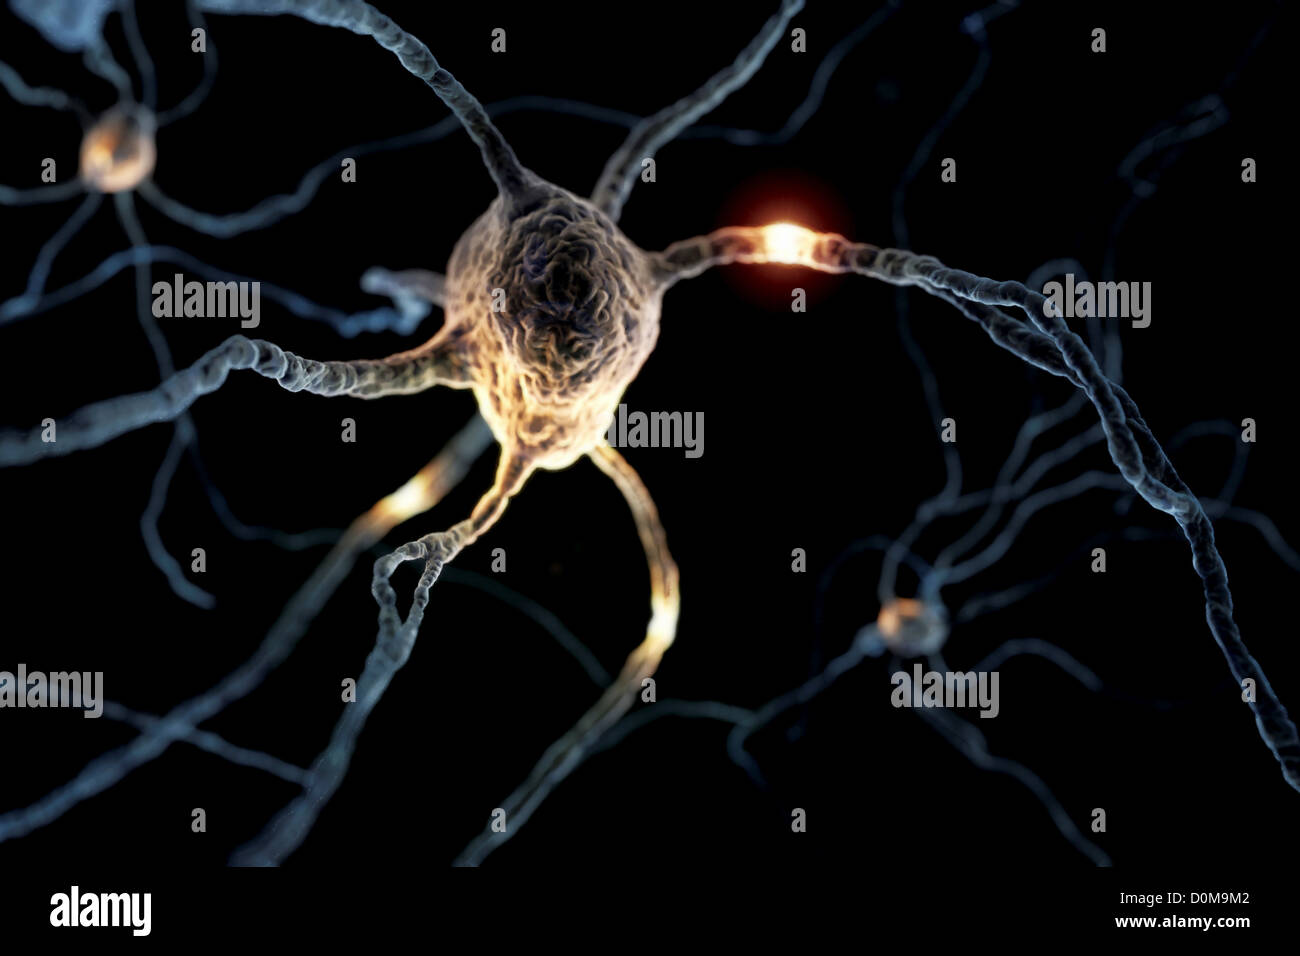 La visualisation de style microscopique des neurones. Photo Stock